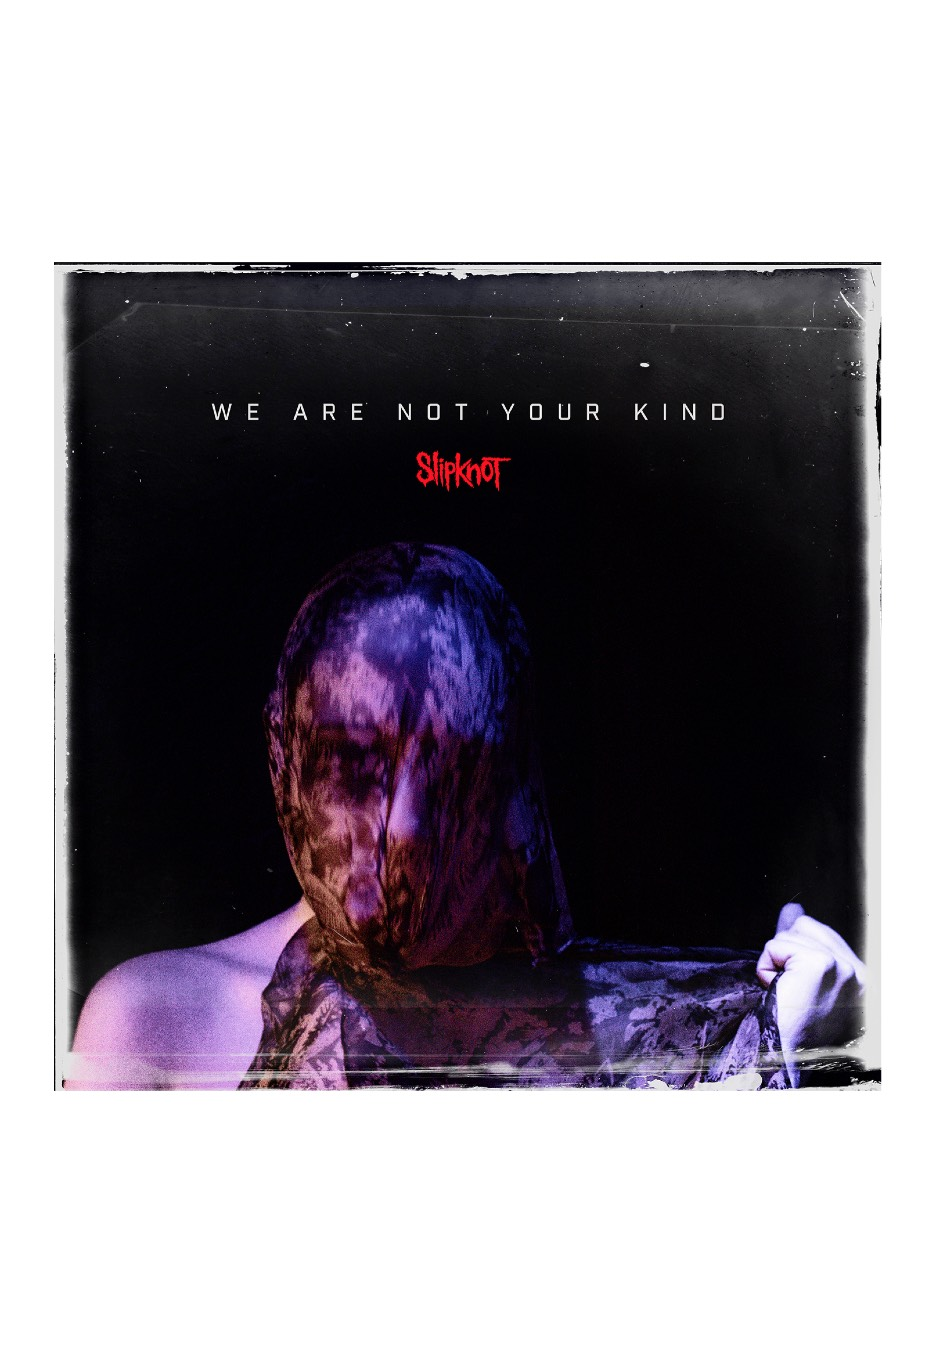 we are not your kind tracklist